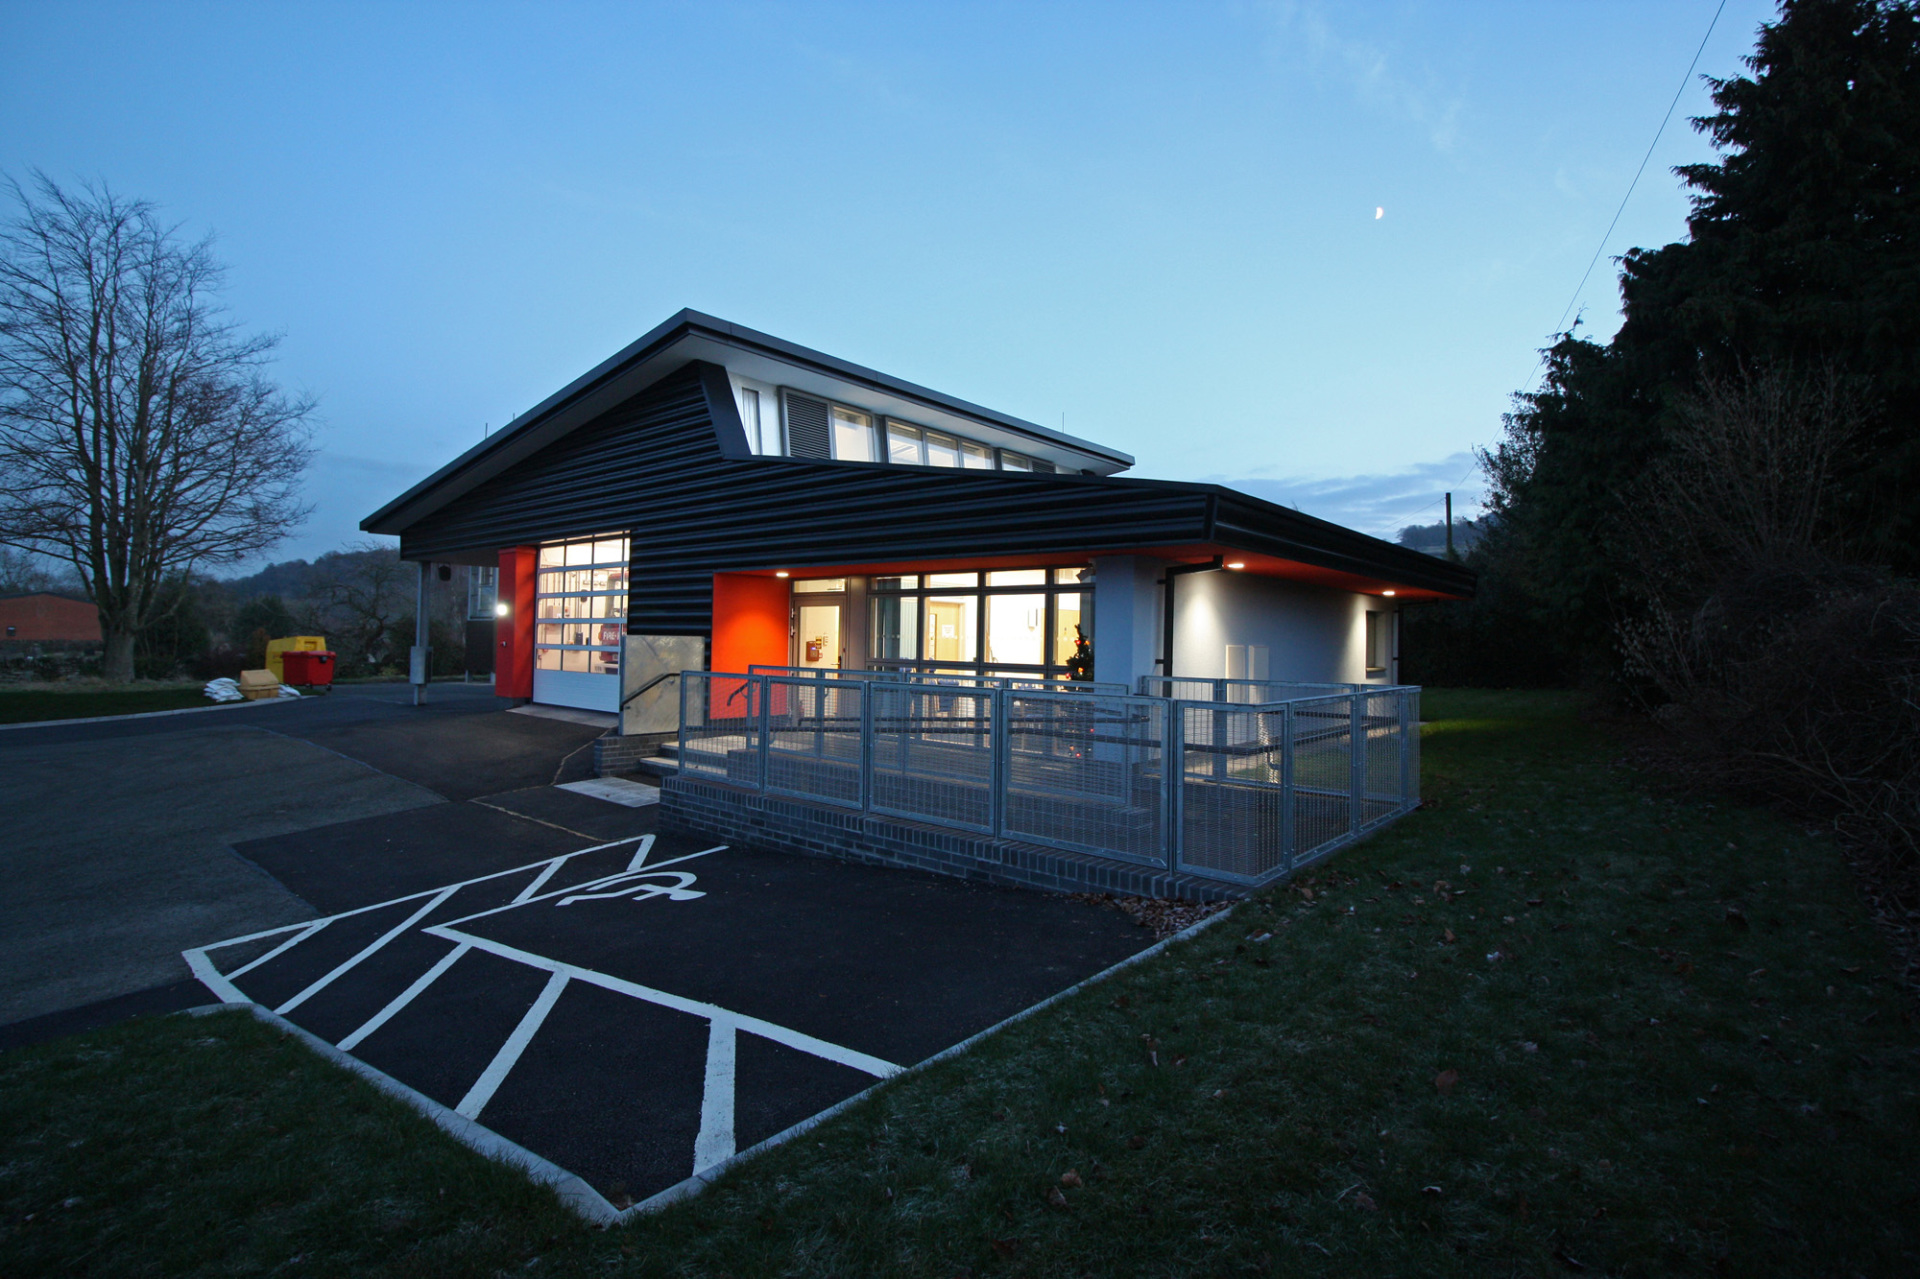 Extension to Clun Fire Station